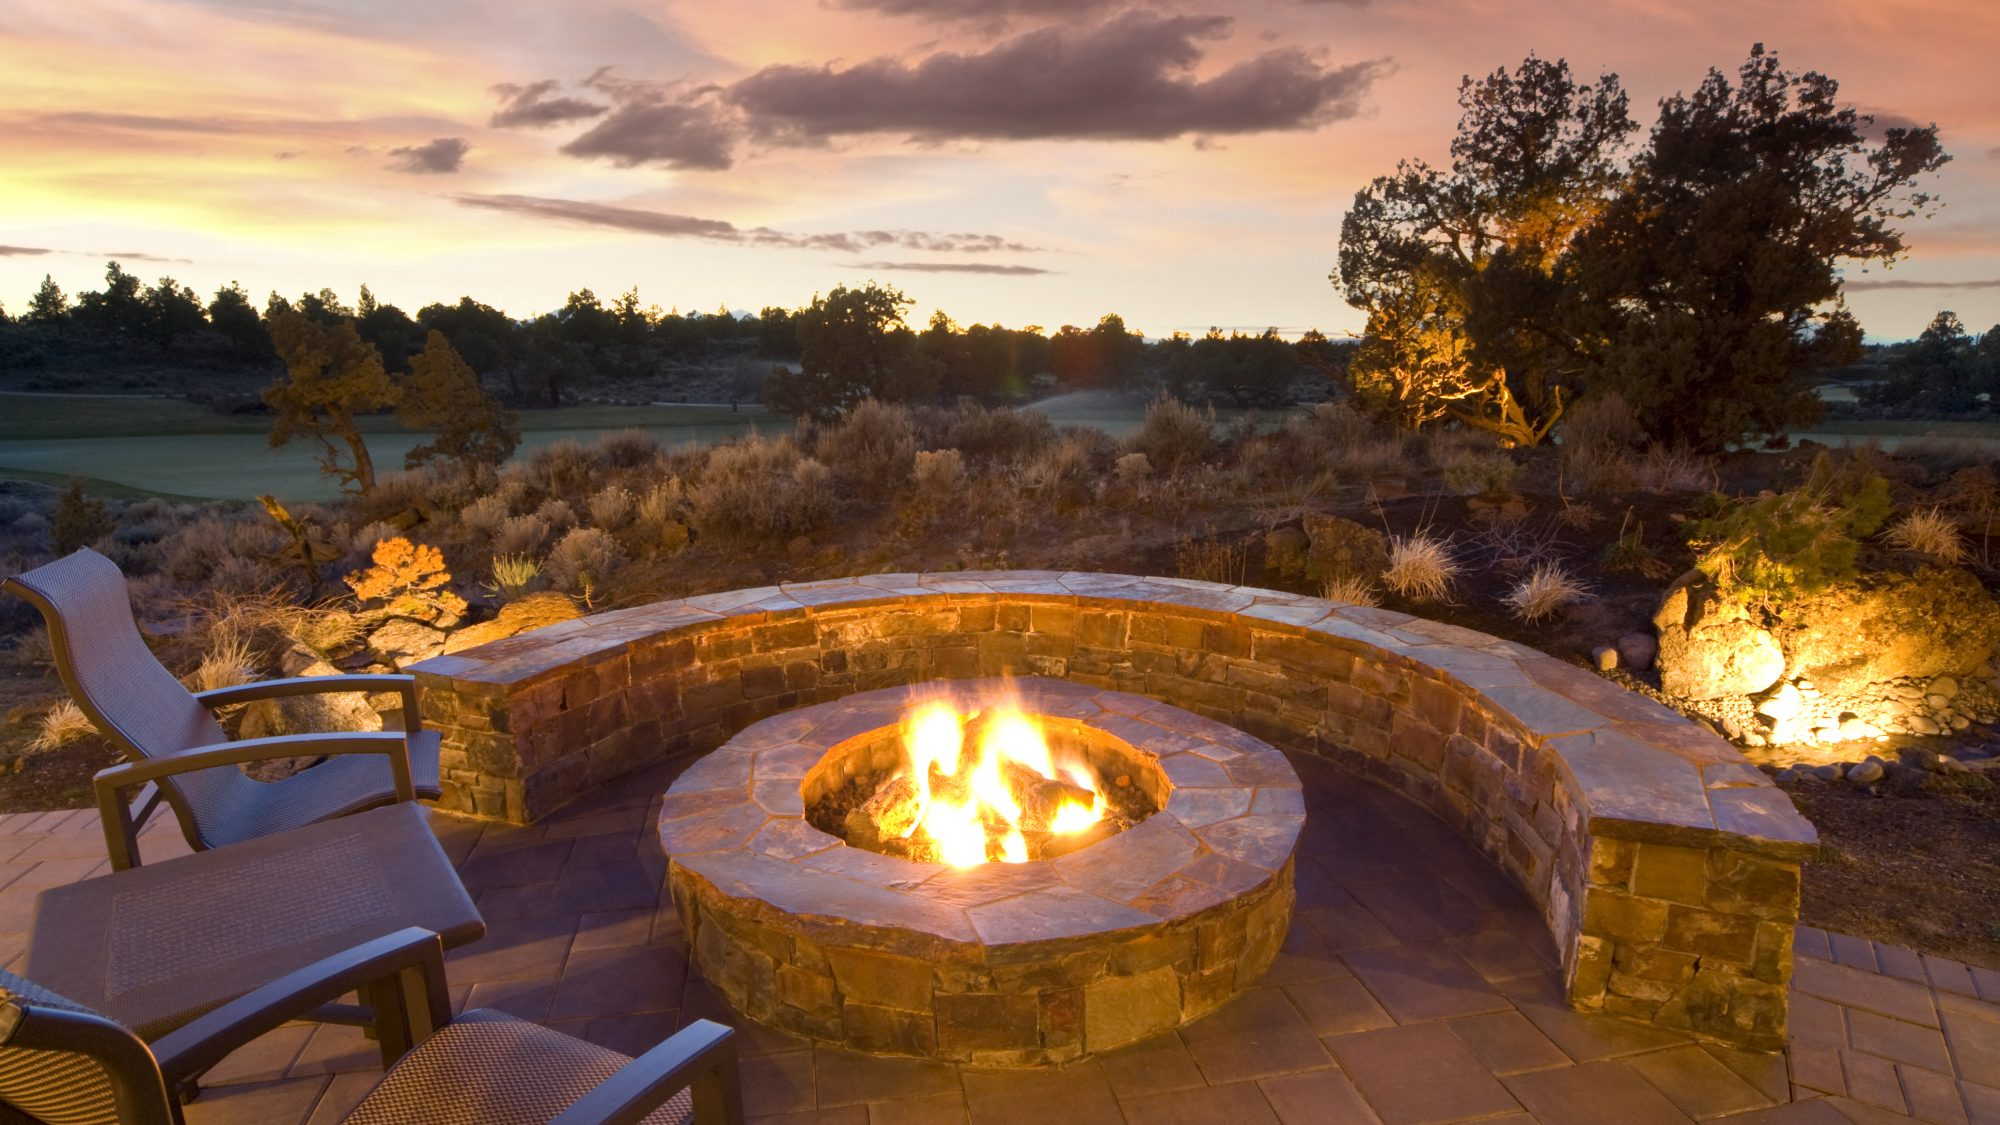 Fire pit safety and space heater safety tips - outdoor fire pit